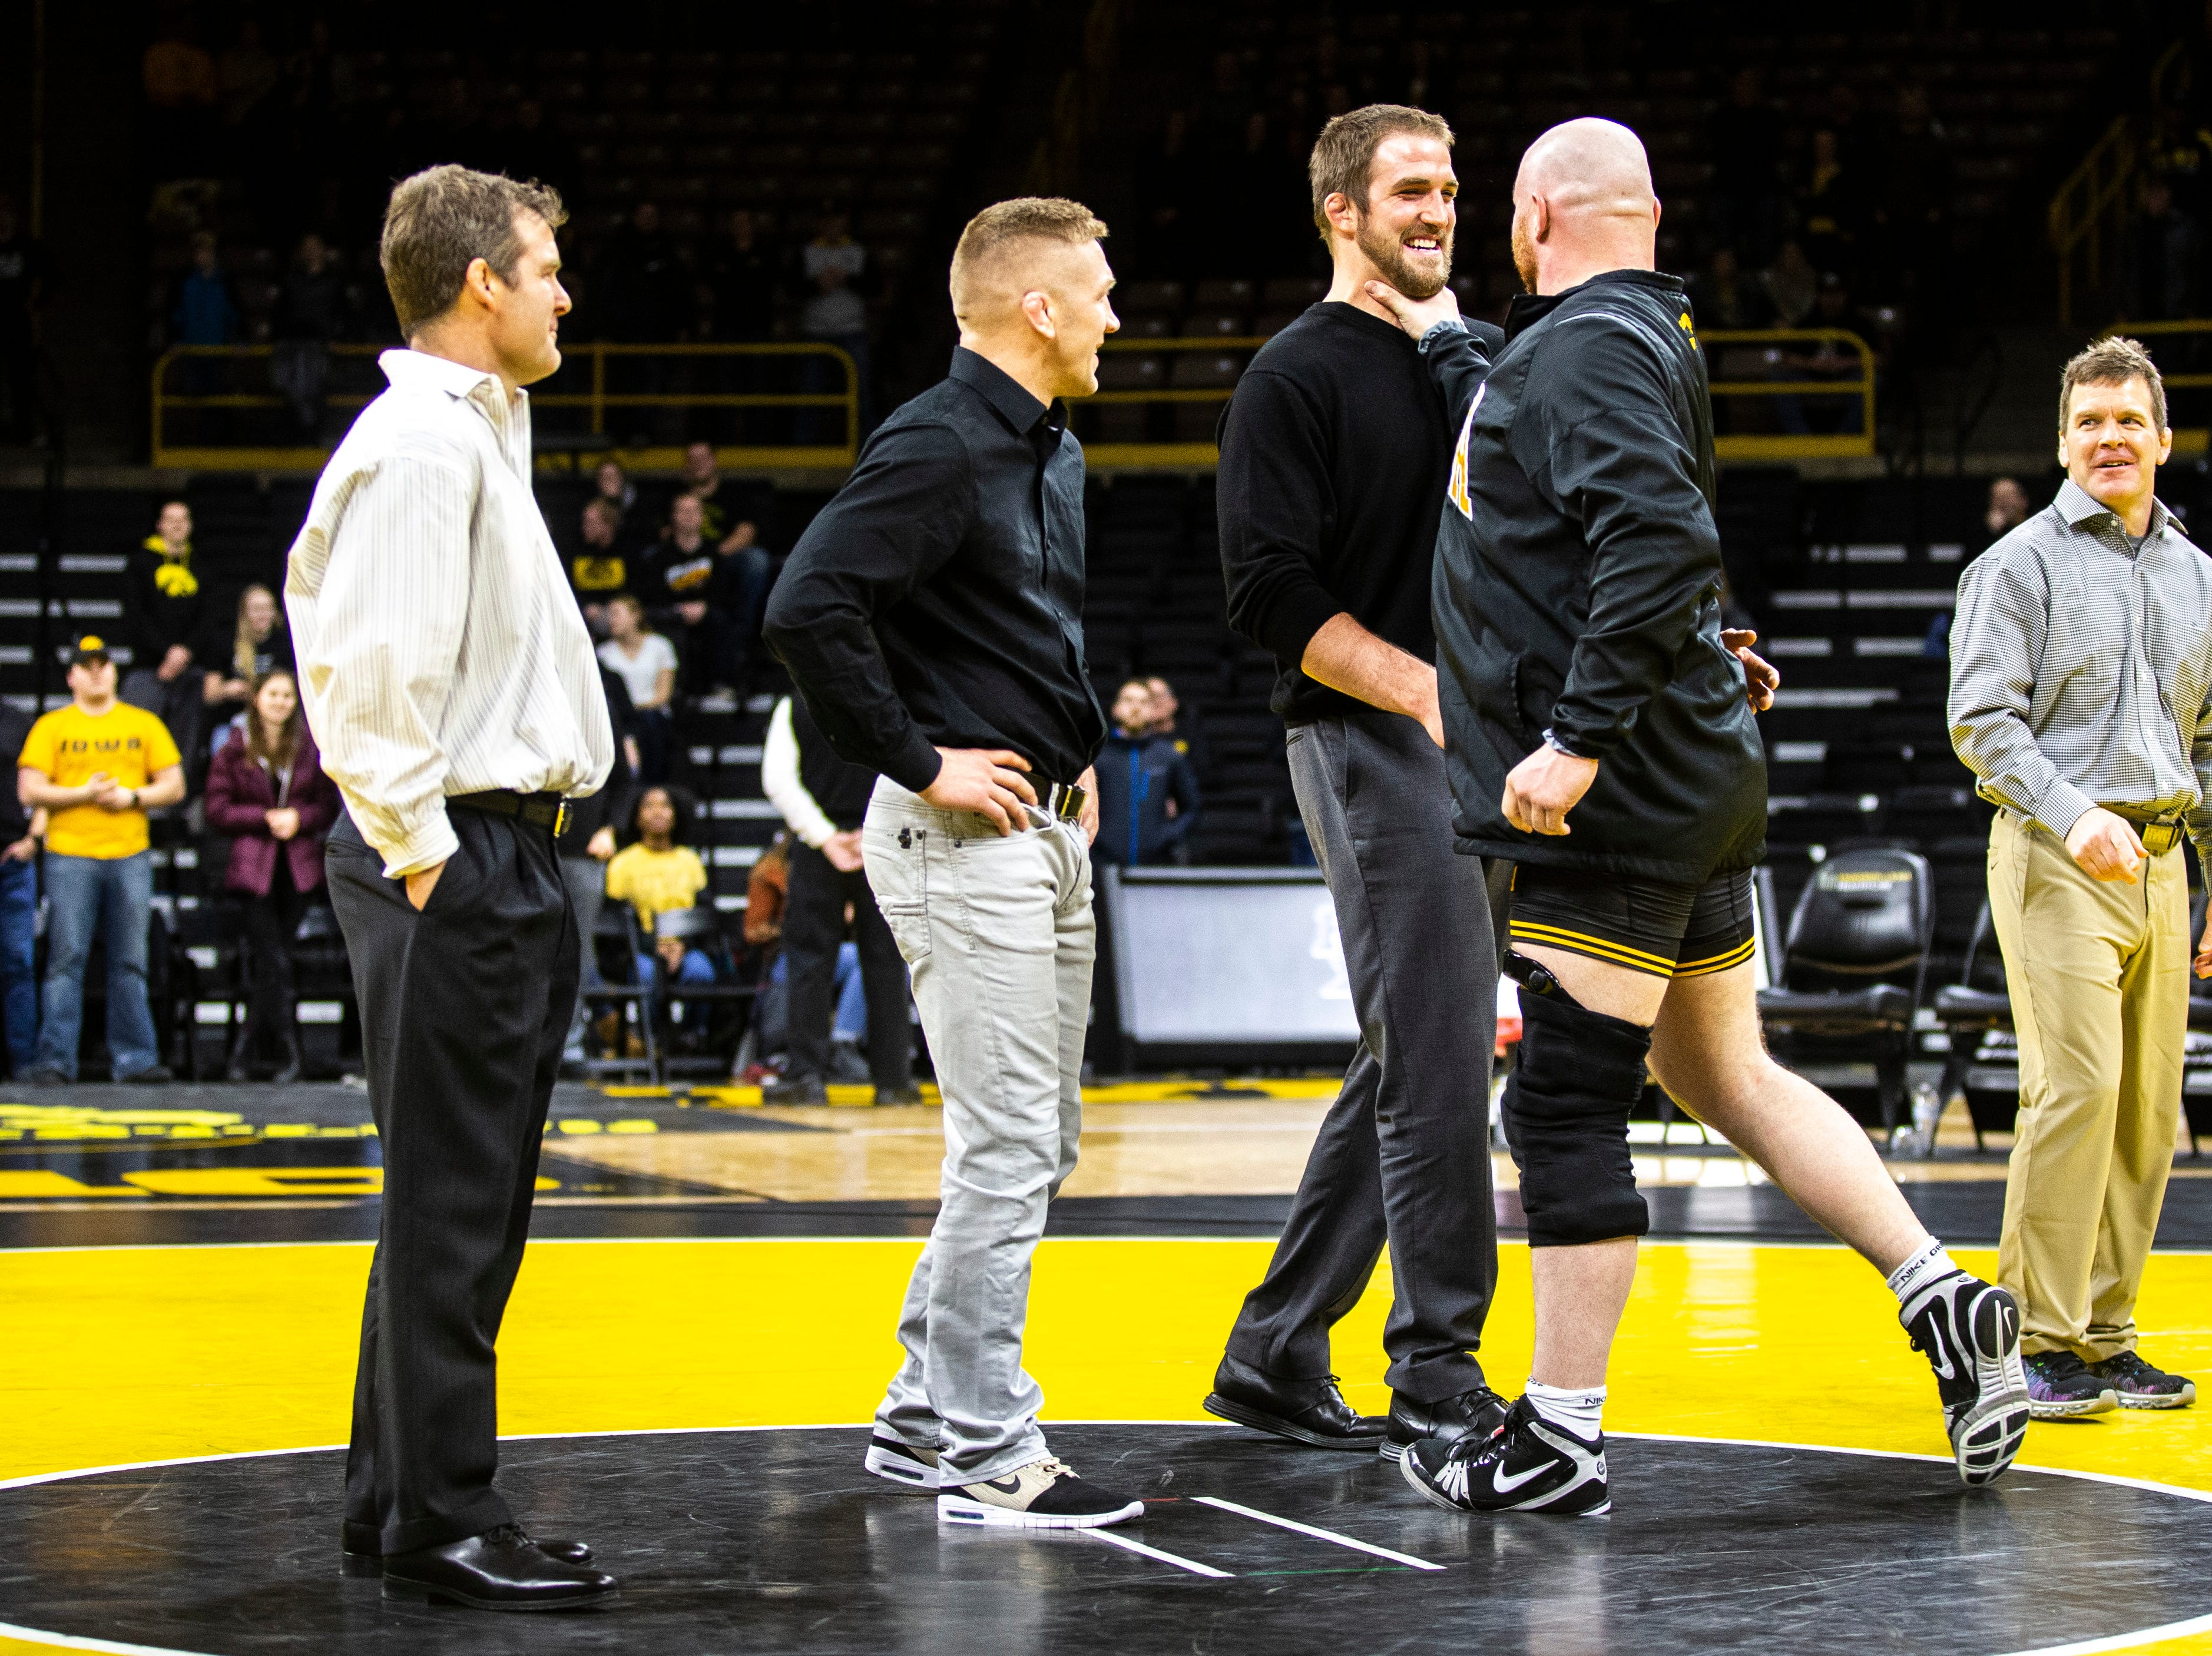 Iowa senior 285-pound Sam Stoll jokes around with assistant Bobby Telford during a NCAA Big Ten Conference wrestling dual on Friday, Feb. 15, 2019 at Carver-Hawkeye Arena in Iowa City, Iowa.